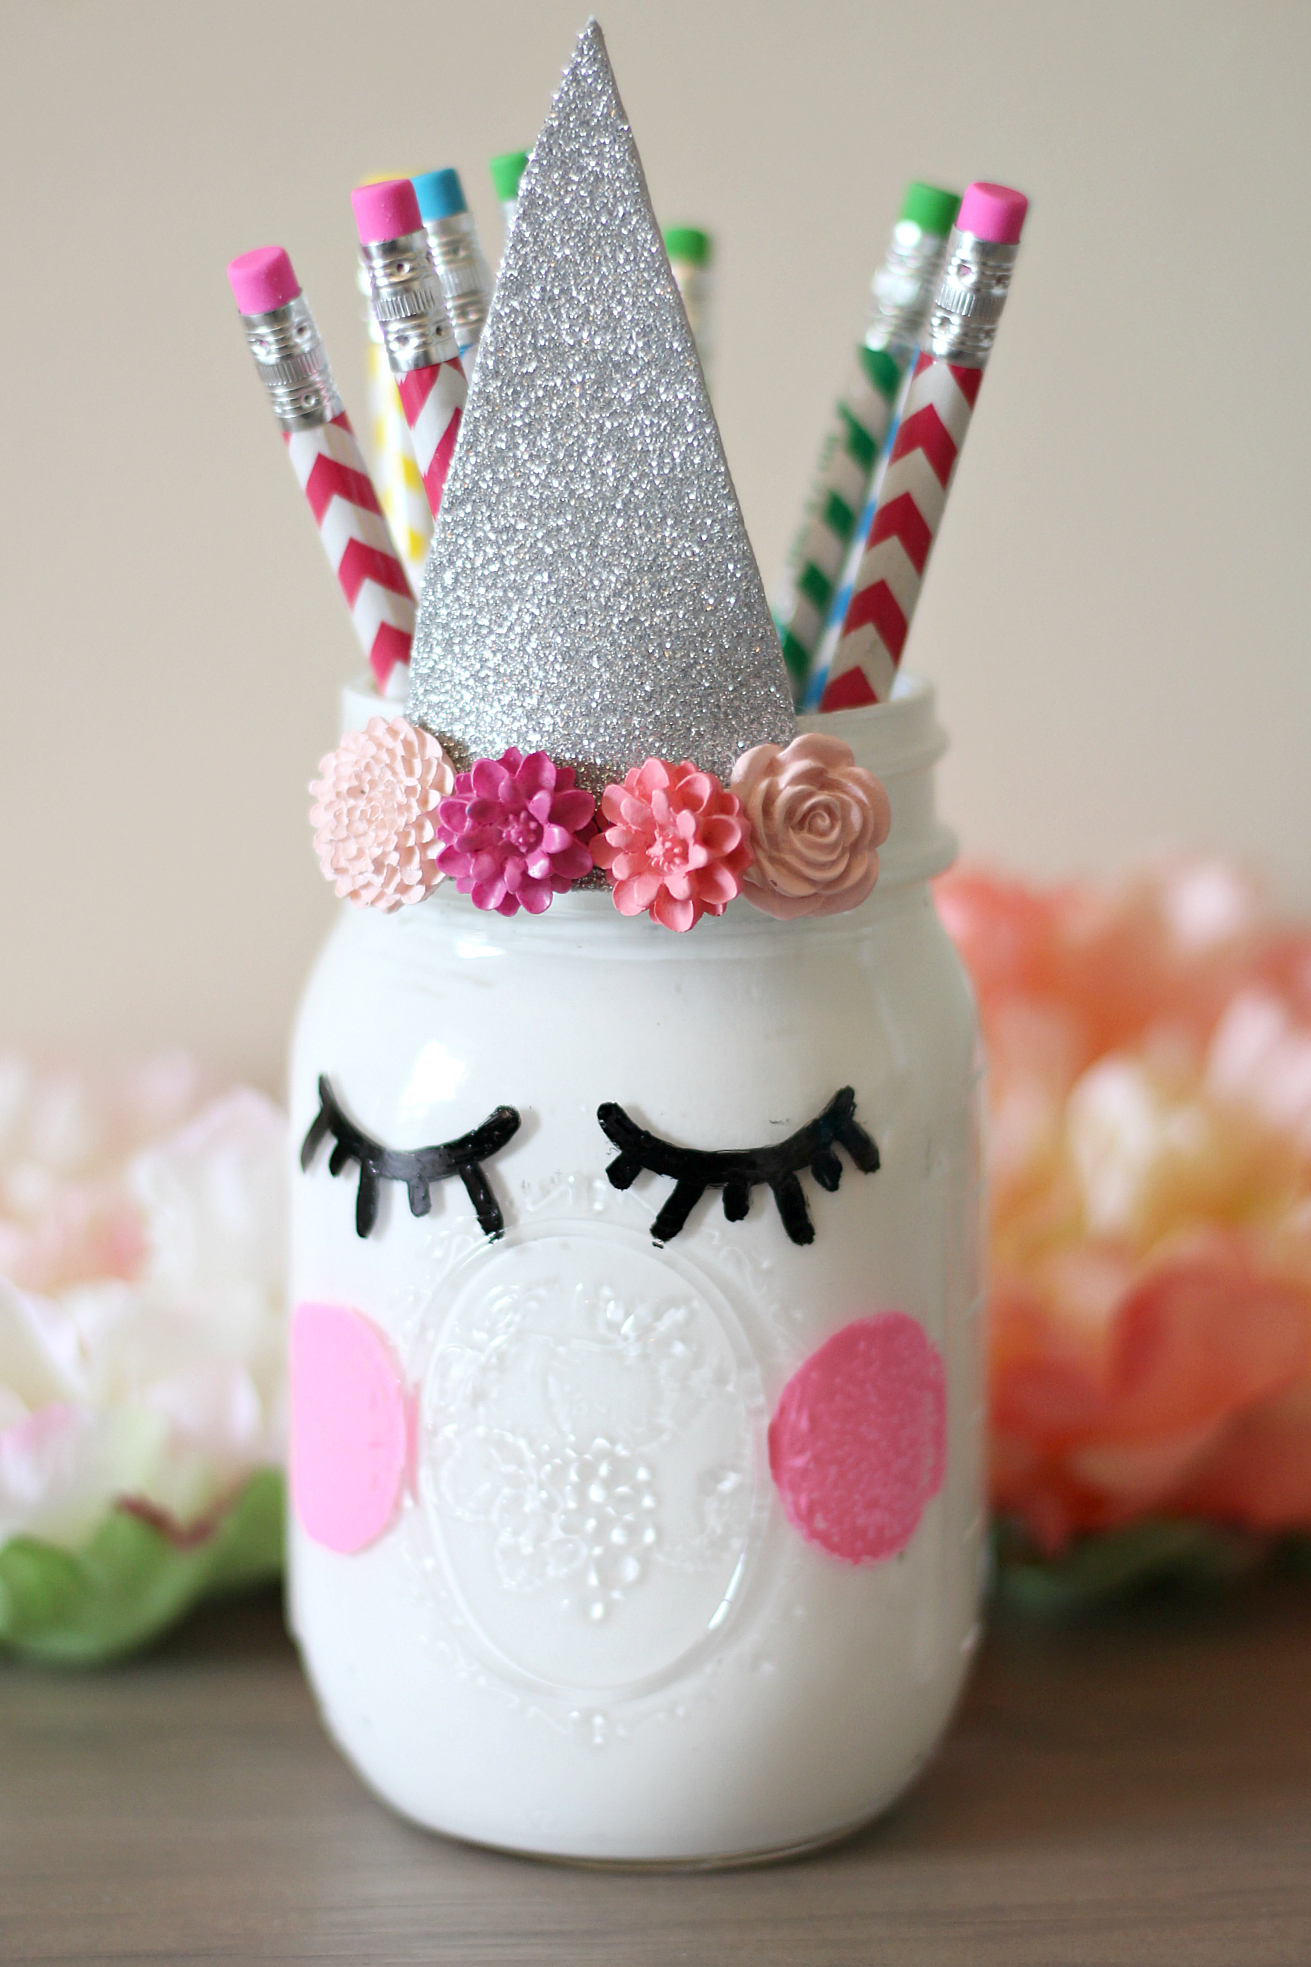 DIY Unicorn Pencil Holder! Cute and easy kids craft idea! #diy #kidscraft #unicorndiy #unicorn #unicorntheme #unicorncraft